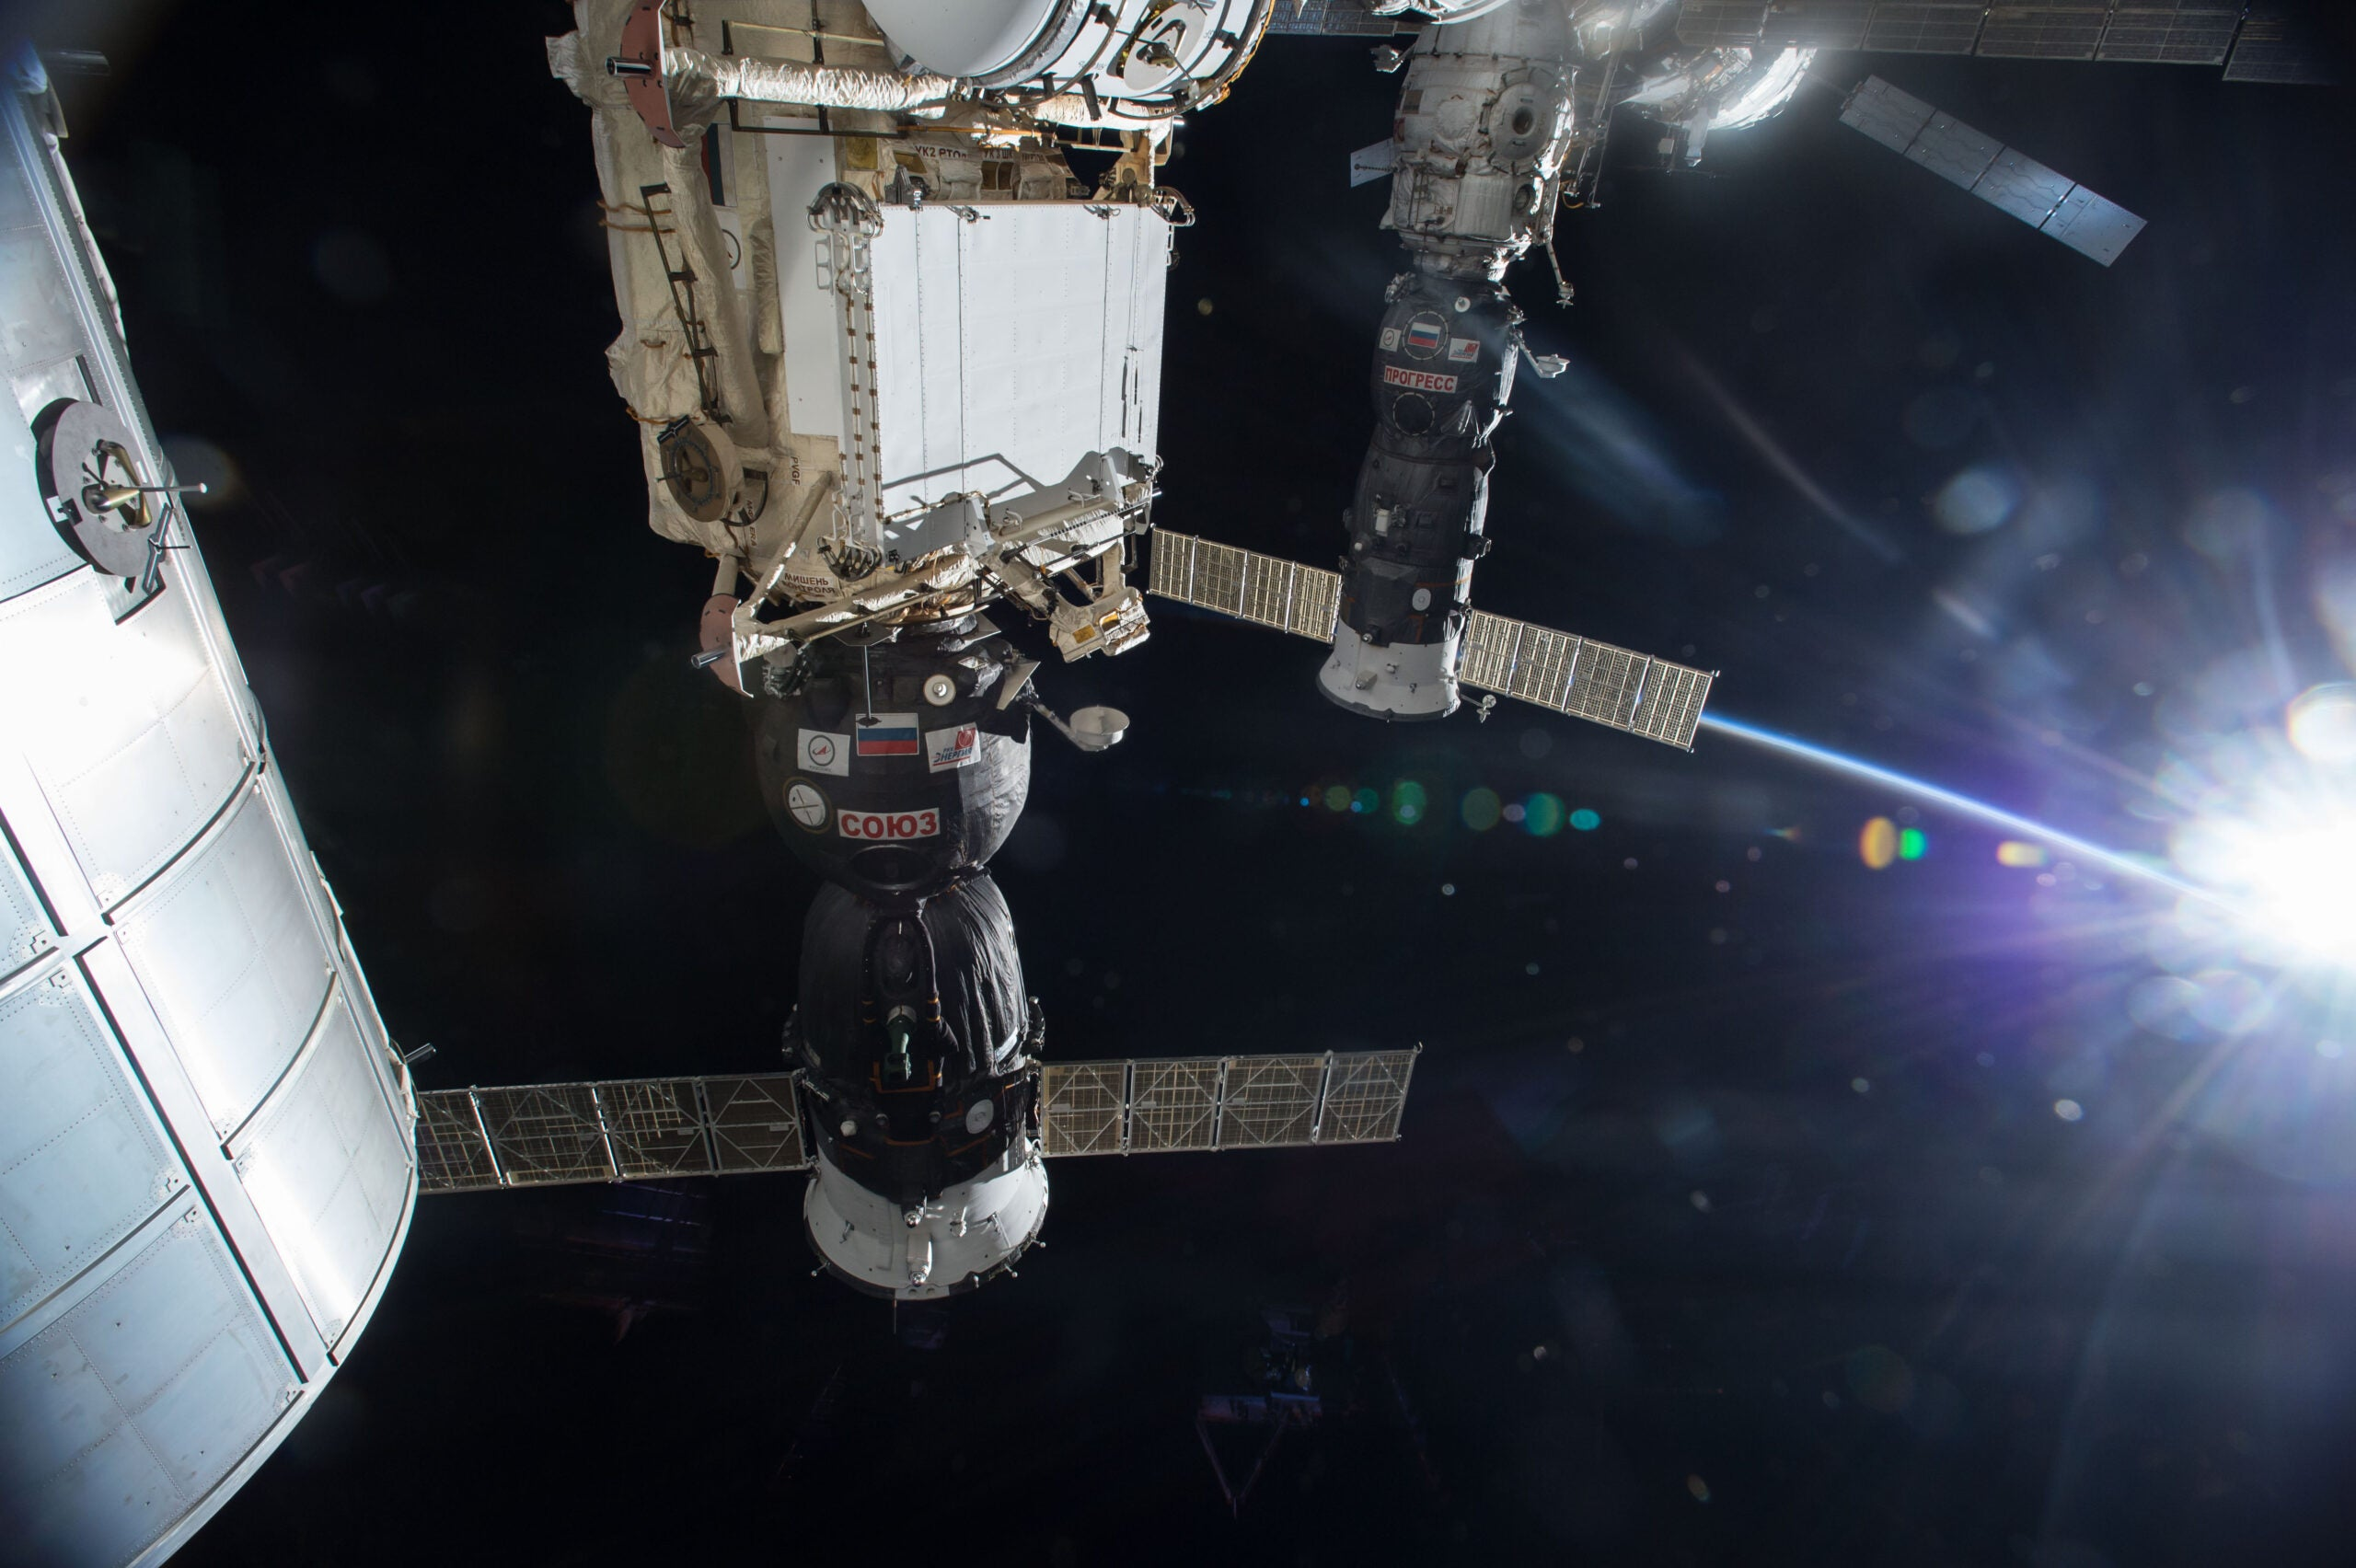 Lost Russian Spaceship Will No Longer Dock With Space Station